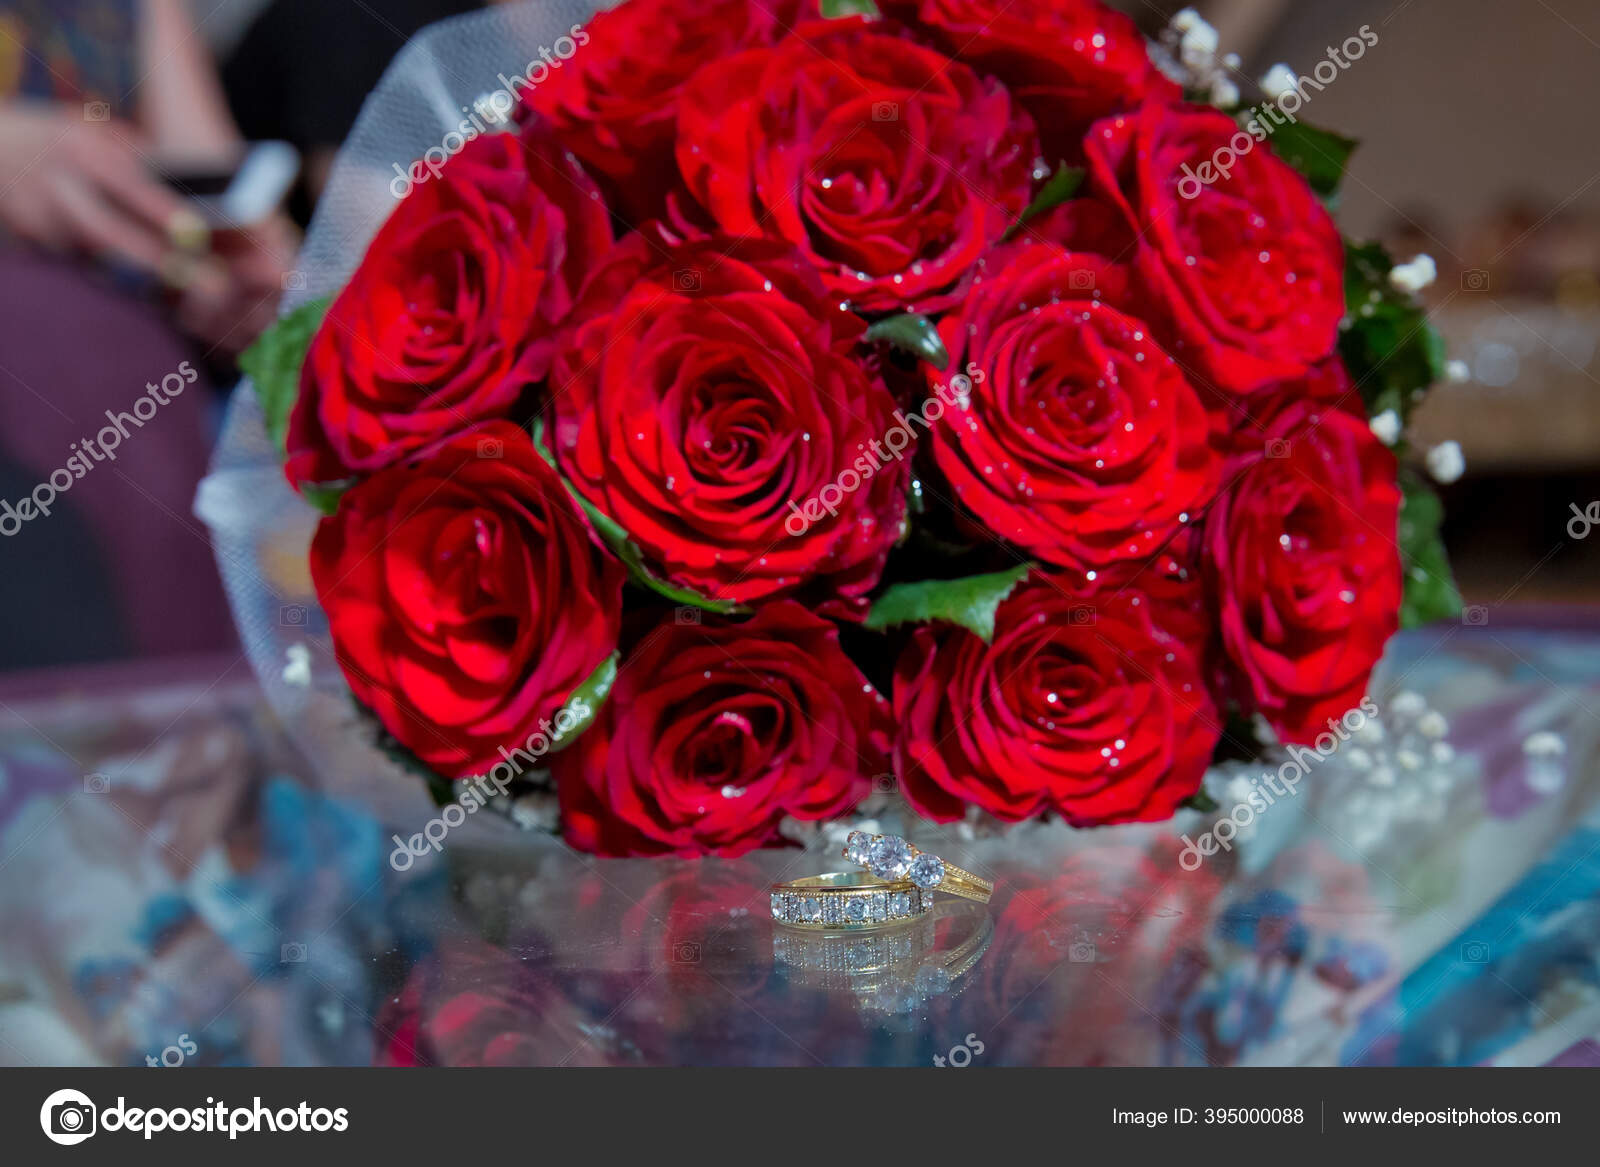 Glass Table Wedding Rings Next To A Red Flower Bouquet Selective Focuse Bride And Groom With Engagement Gold Rings Put On The Table And Next To Them Lies A Wedding